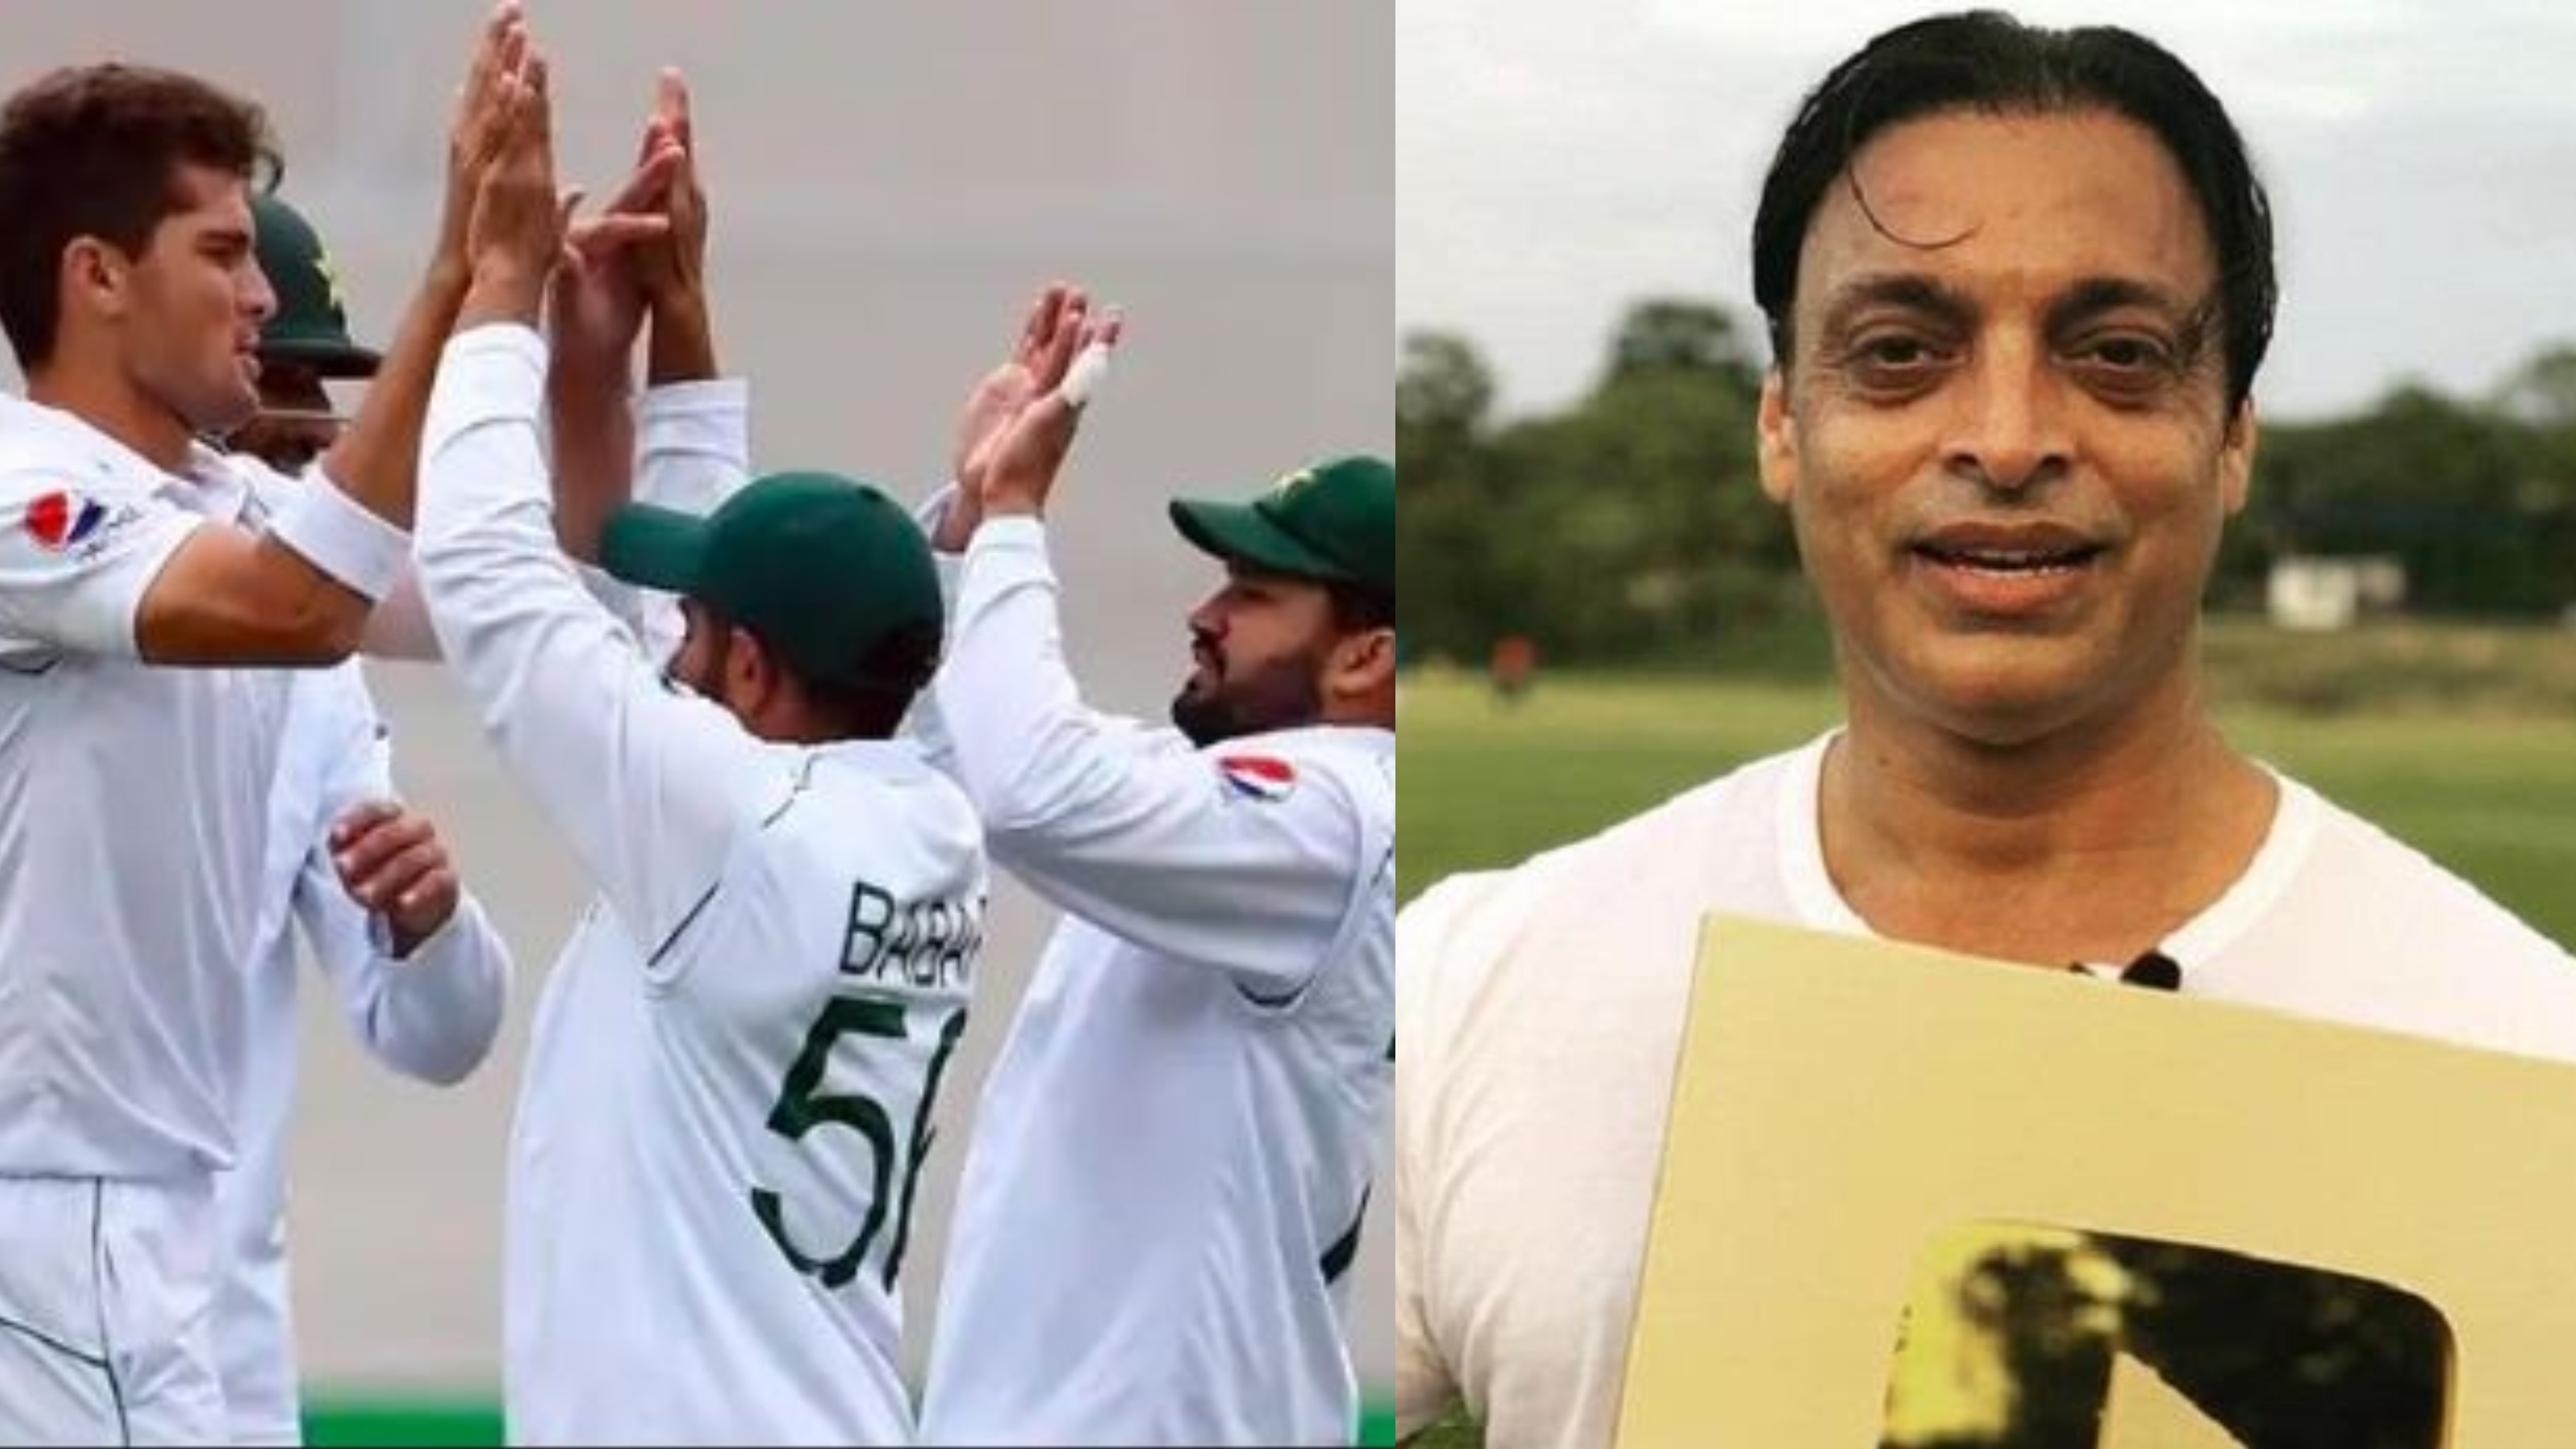 ENG v PAK 2020: Pray to god that Pakistan won't just settle for a draw in Test series, says Shoaib Akhtar